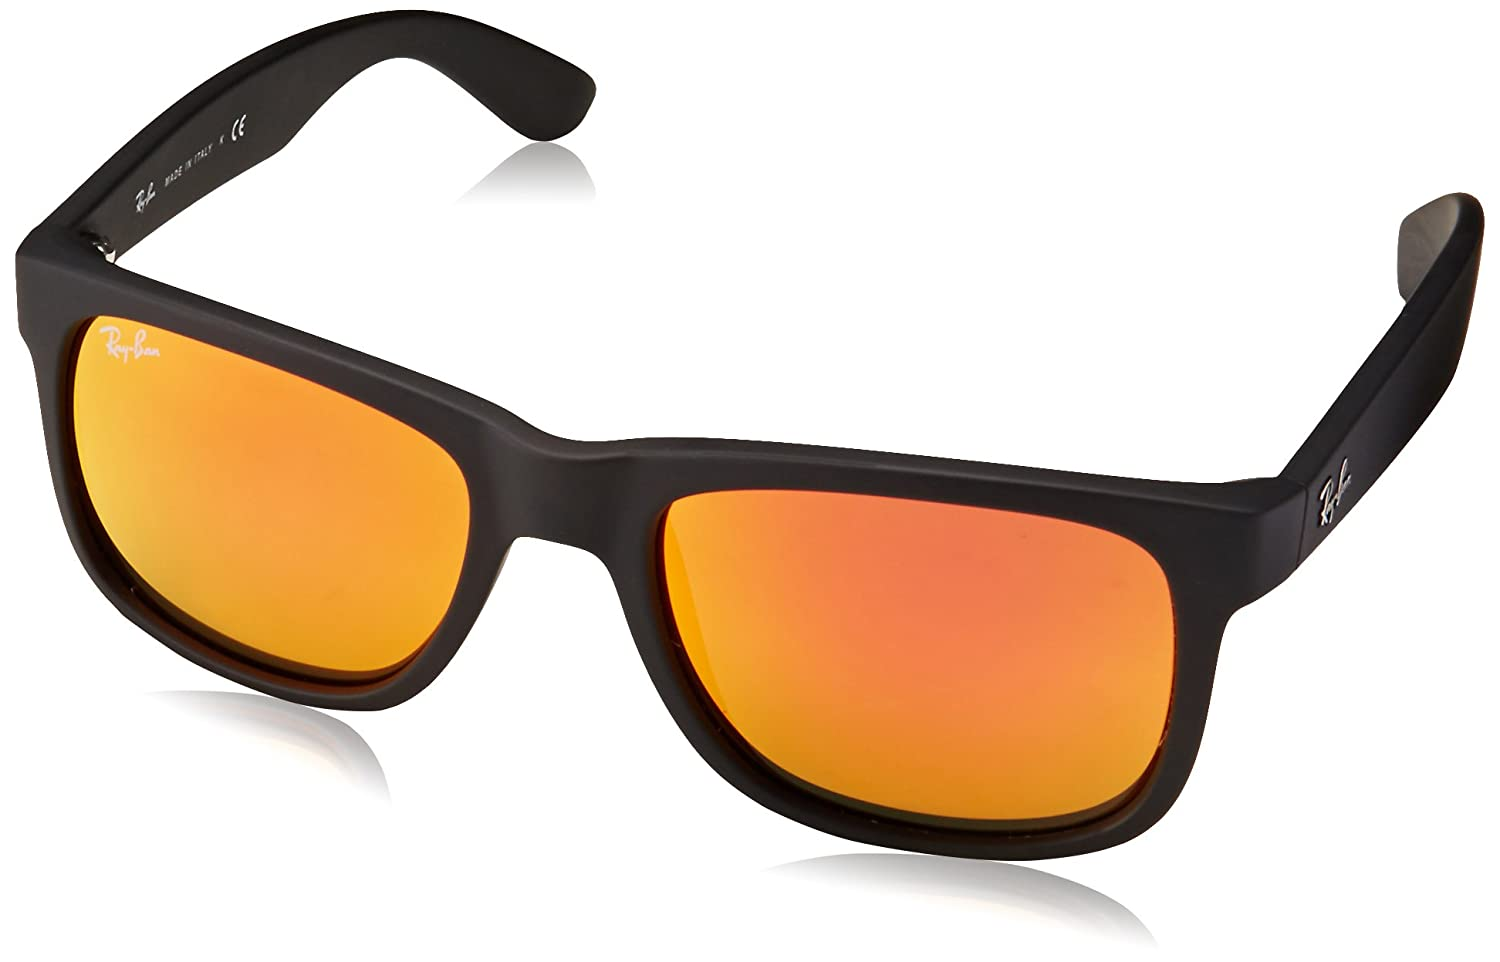 Ray-Ban Justin Sunglasses (RB4165) Black/Orange Plastic, Nylon - Non-Polarized - 54mm RB4165 Non-Polarized MOD.4165SUN_622/6Q-54